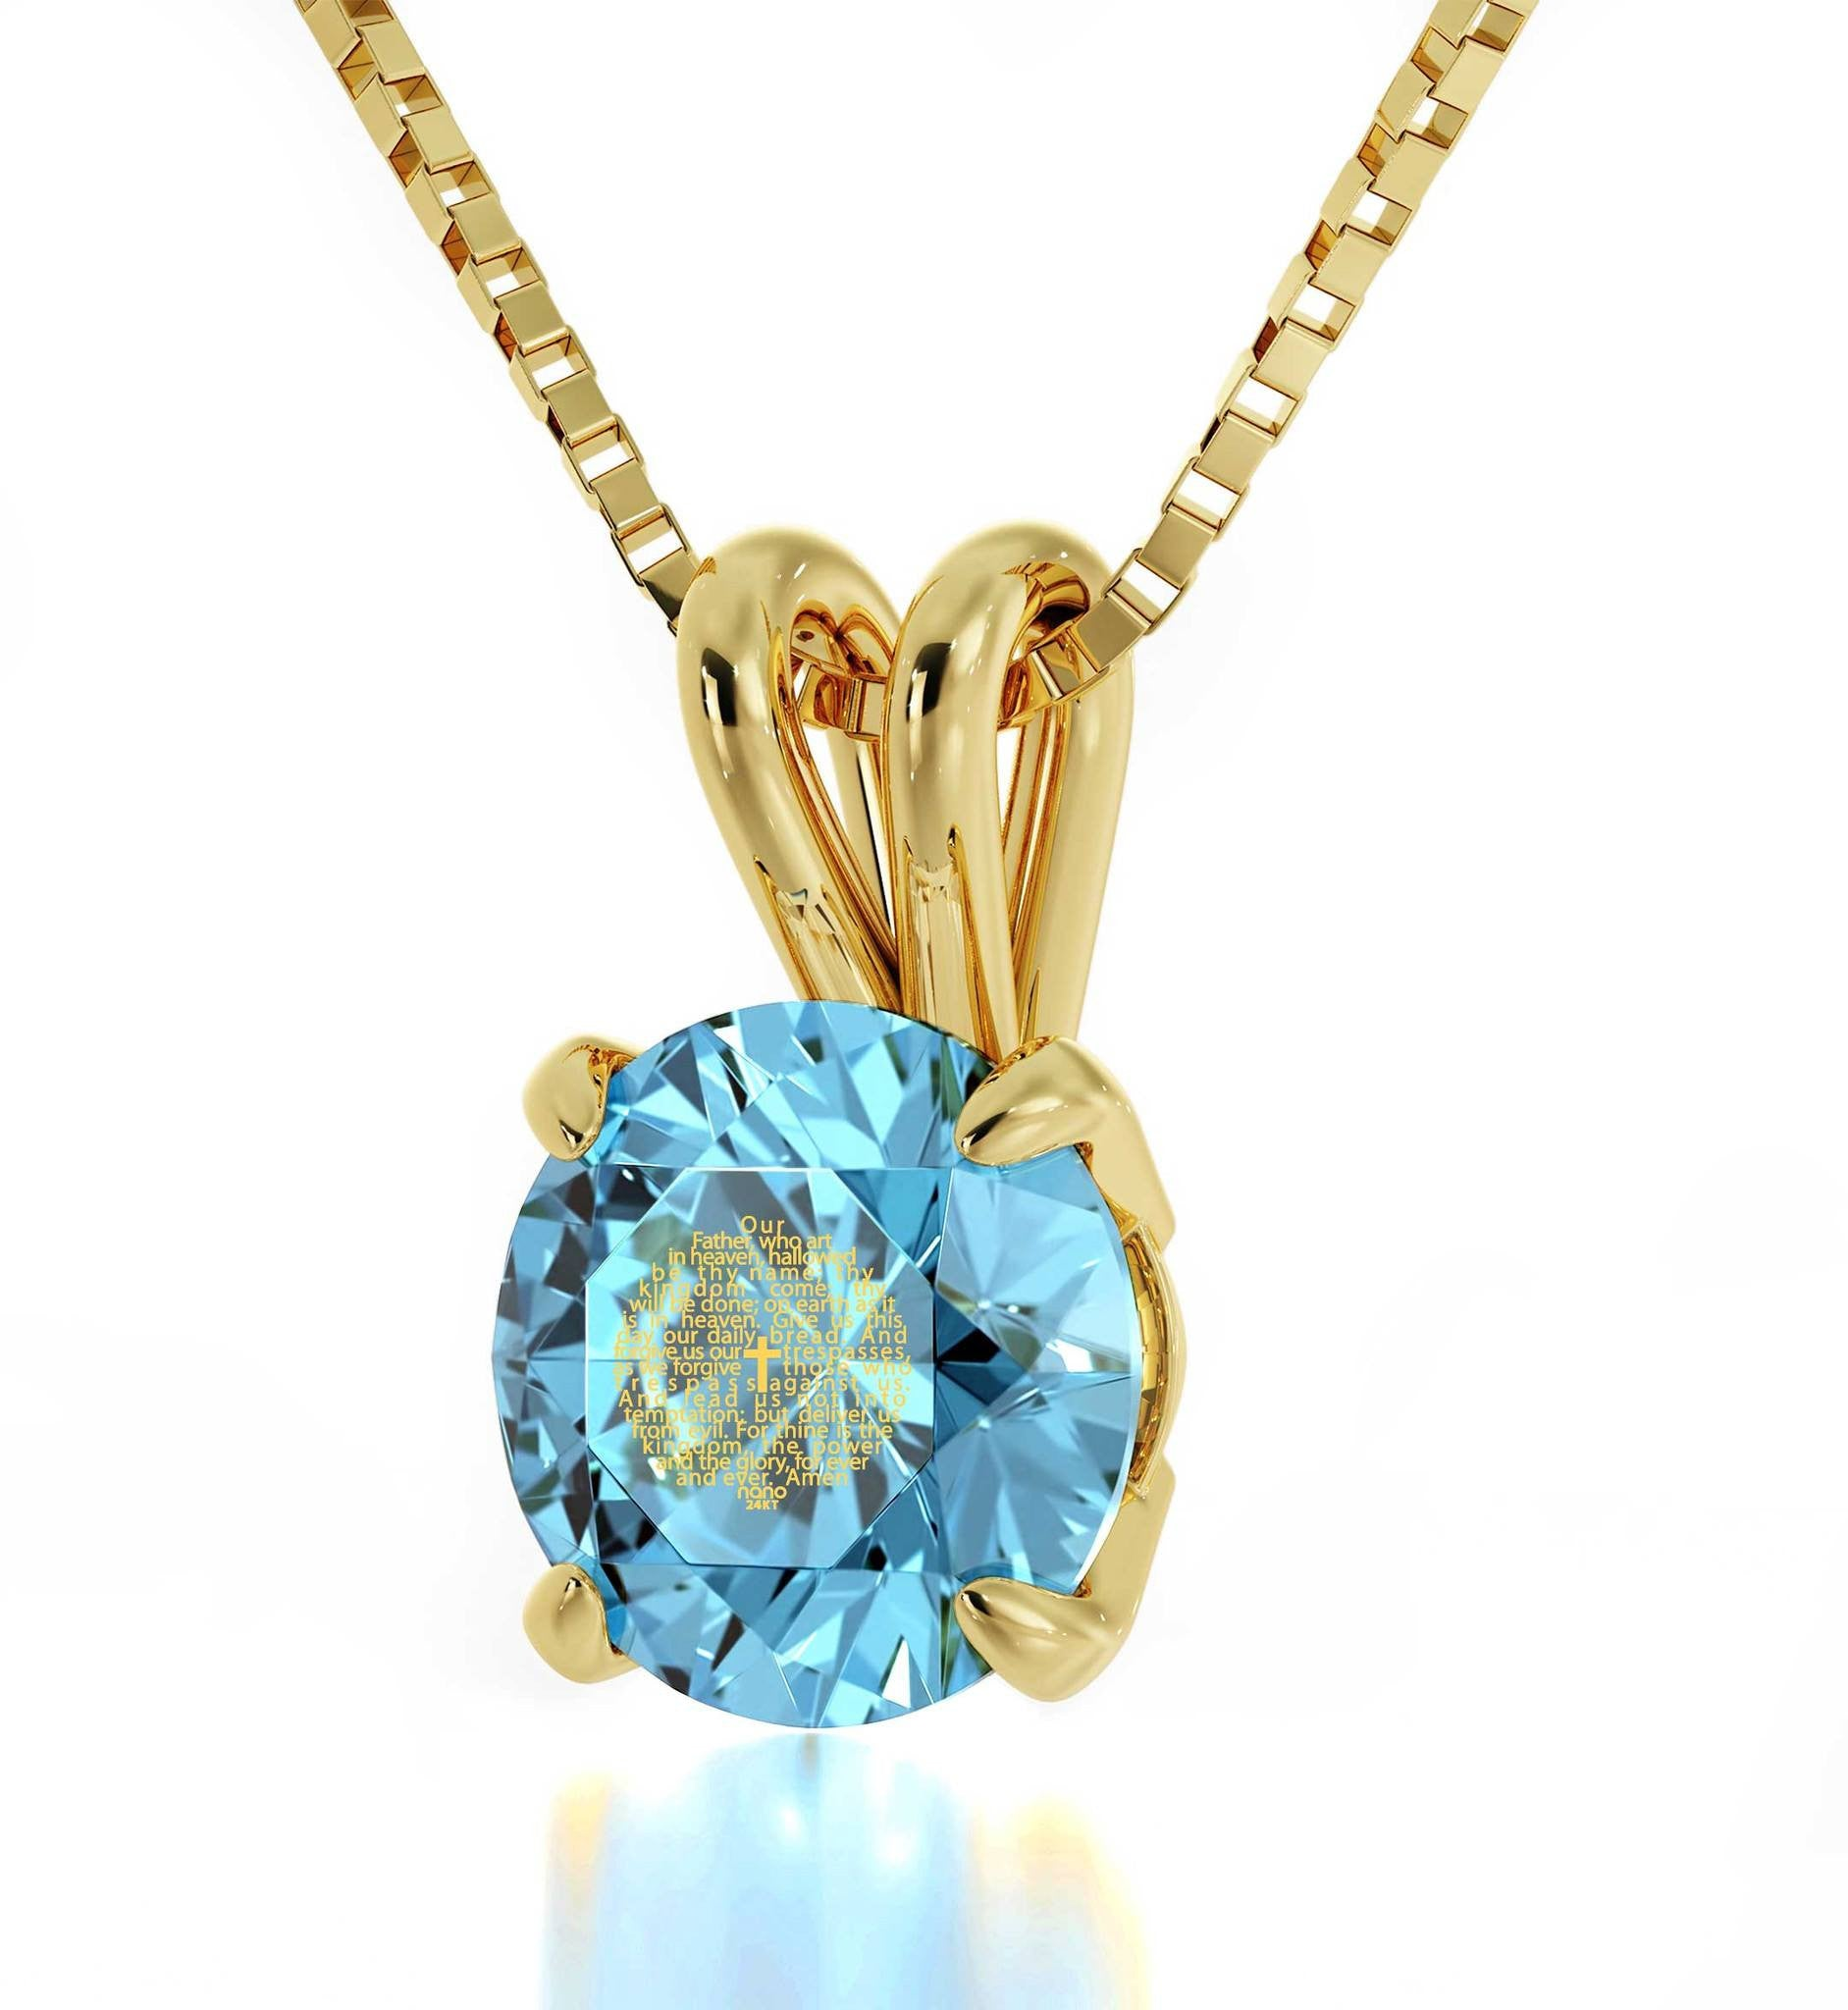 """Lord's Prayer Pendant, Cute Necklaces for Her, Girlfriend Birthday Ideas, Gold Plated Jewelry, Nano"""